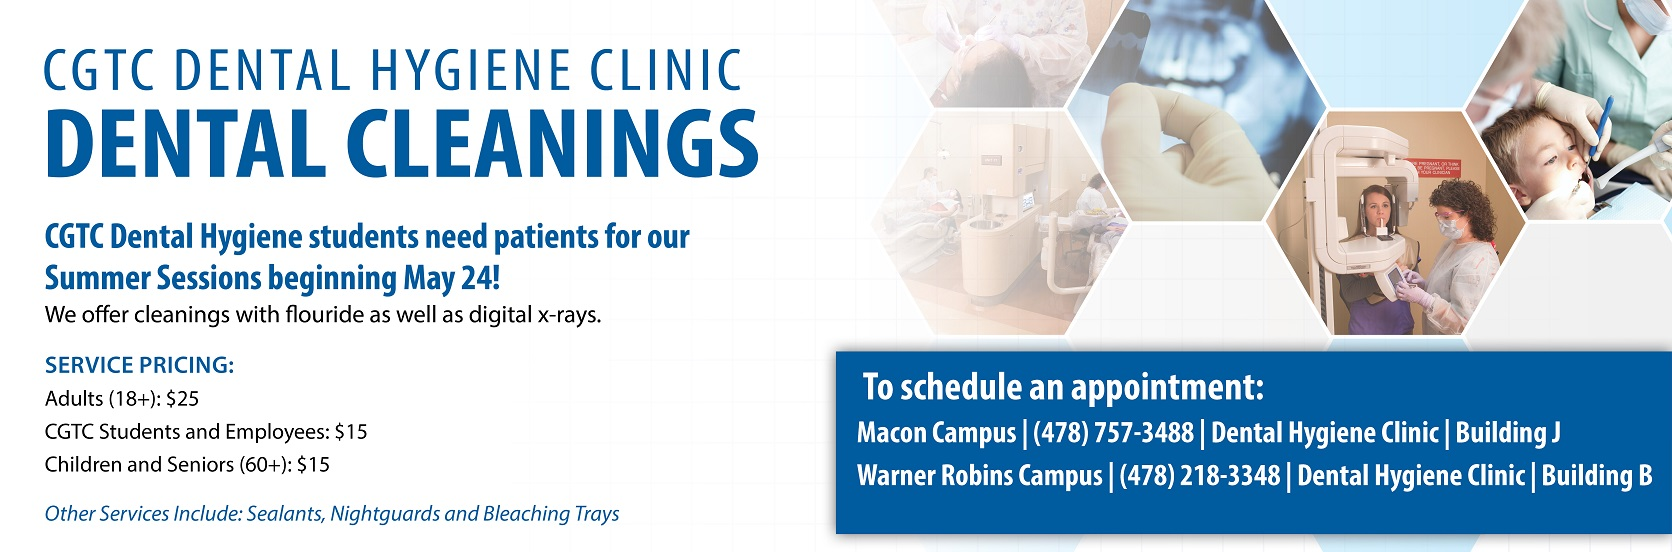 Dental Hygiene Clinics at CGTC are looking for patients. Call 478-218-3348 to learn more.